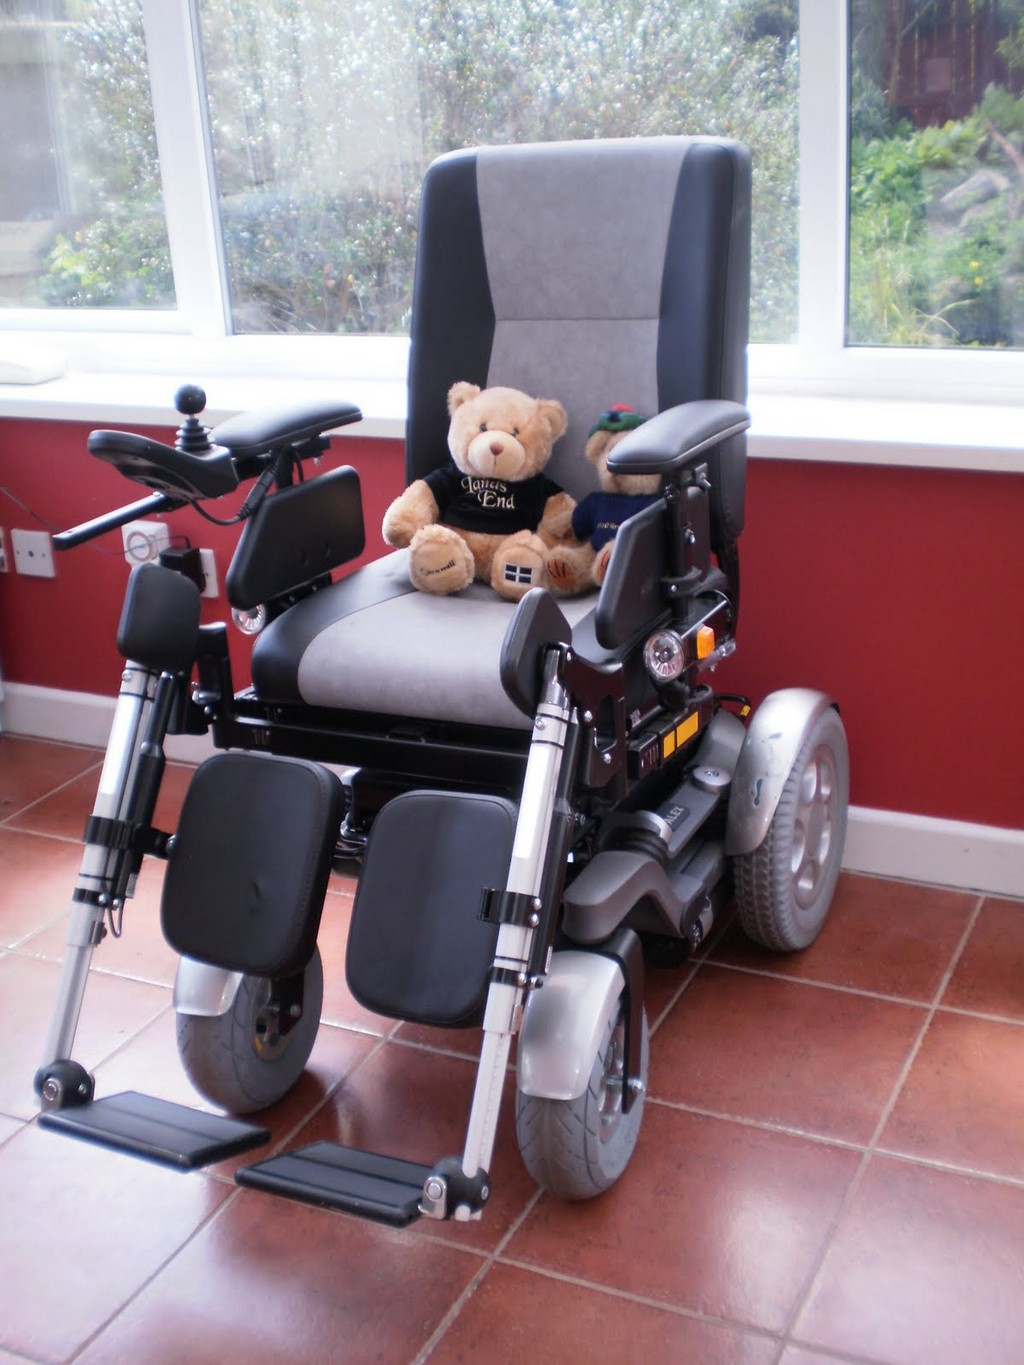 electric wheel chair batteries, electric wheelchairs in orlando, electric wheel chair jazzy, electric wheel chair batterys deep cycle